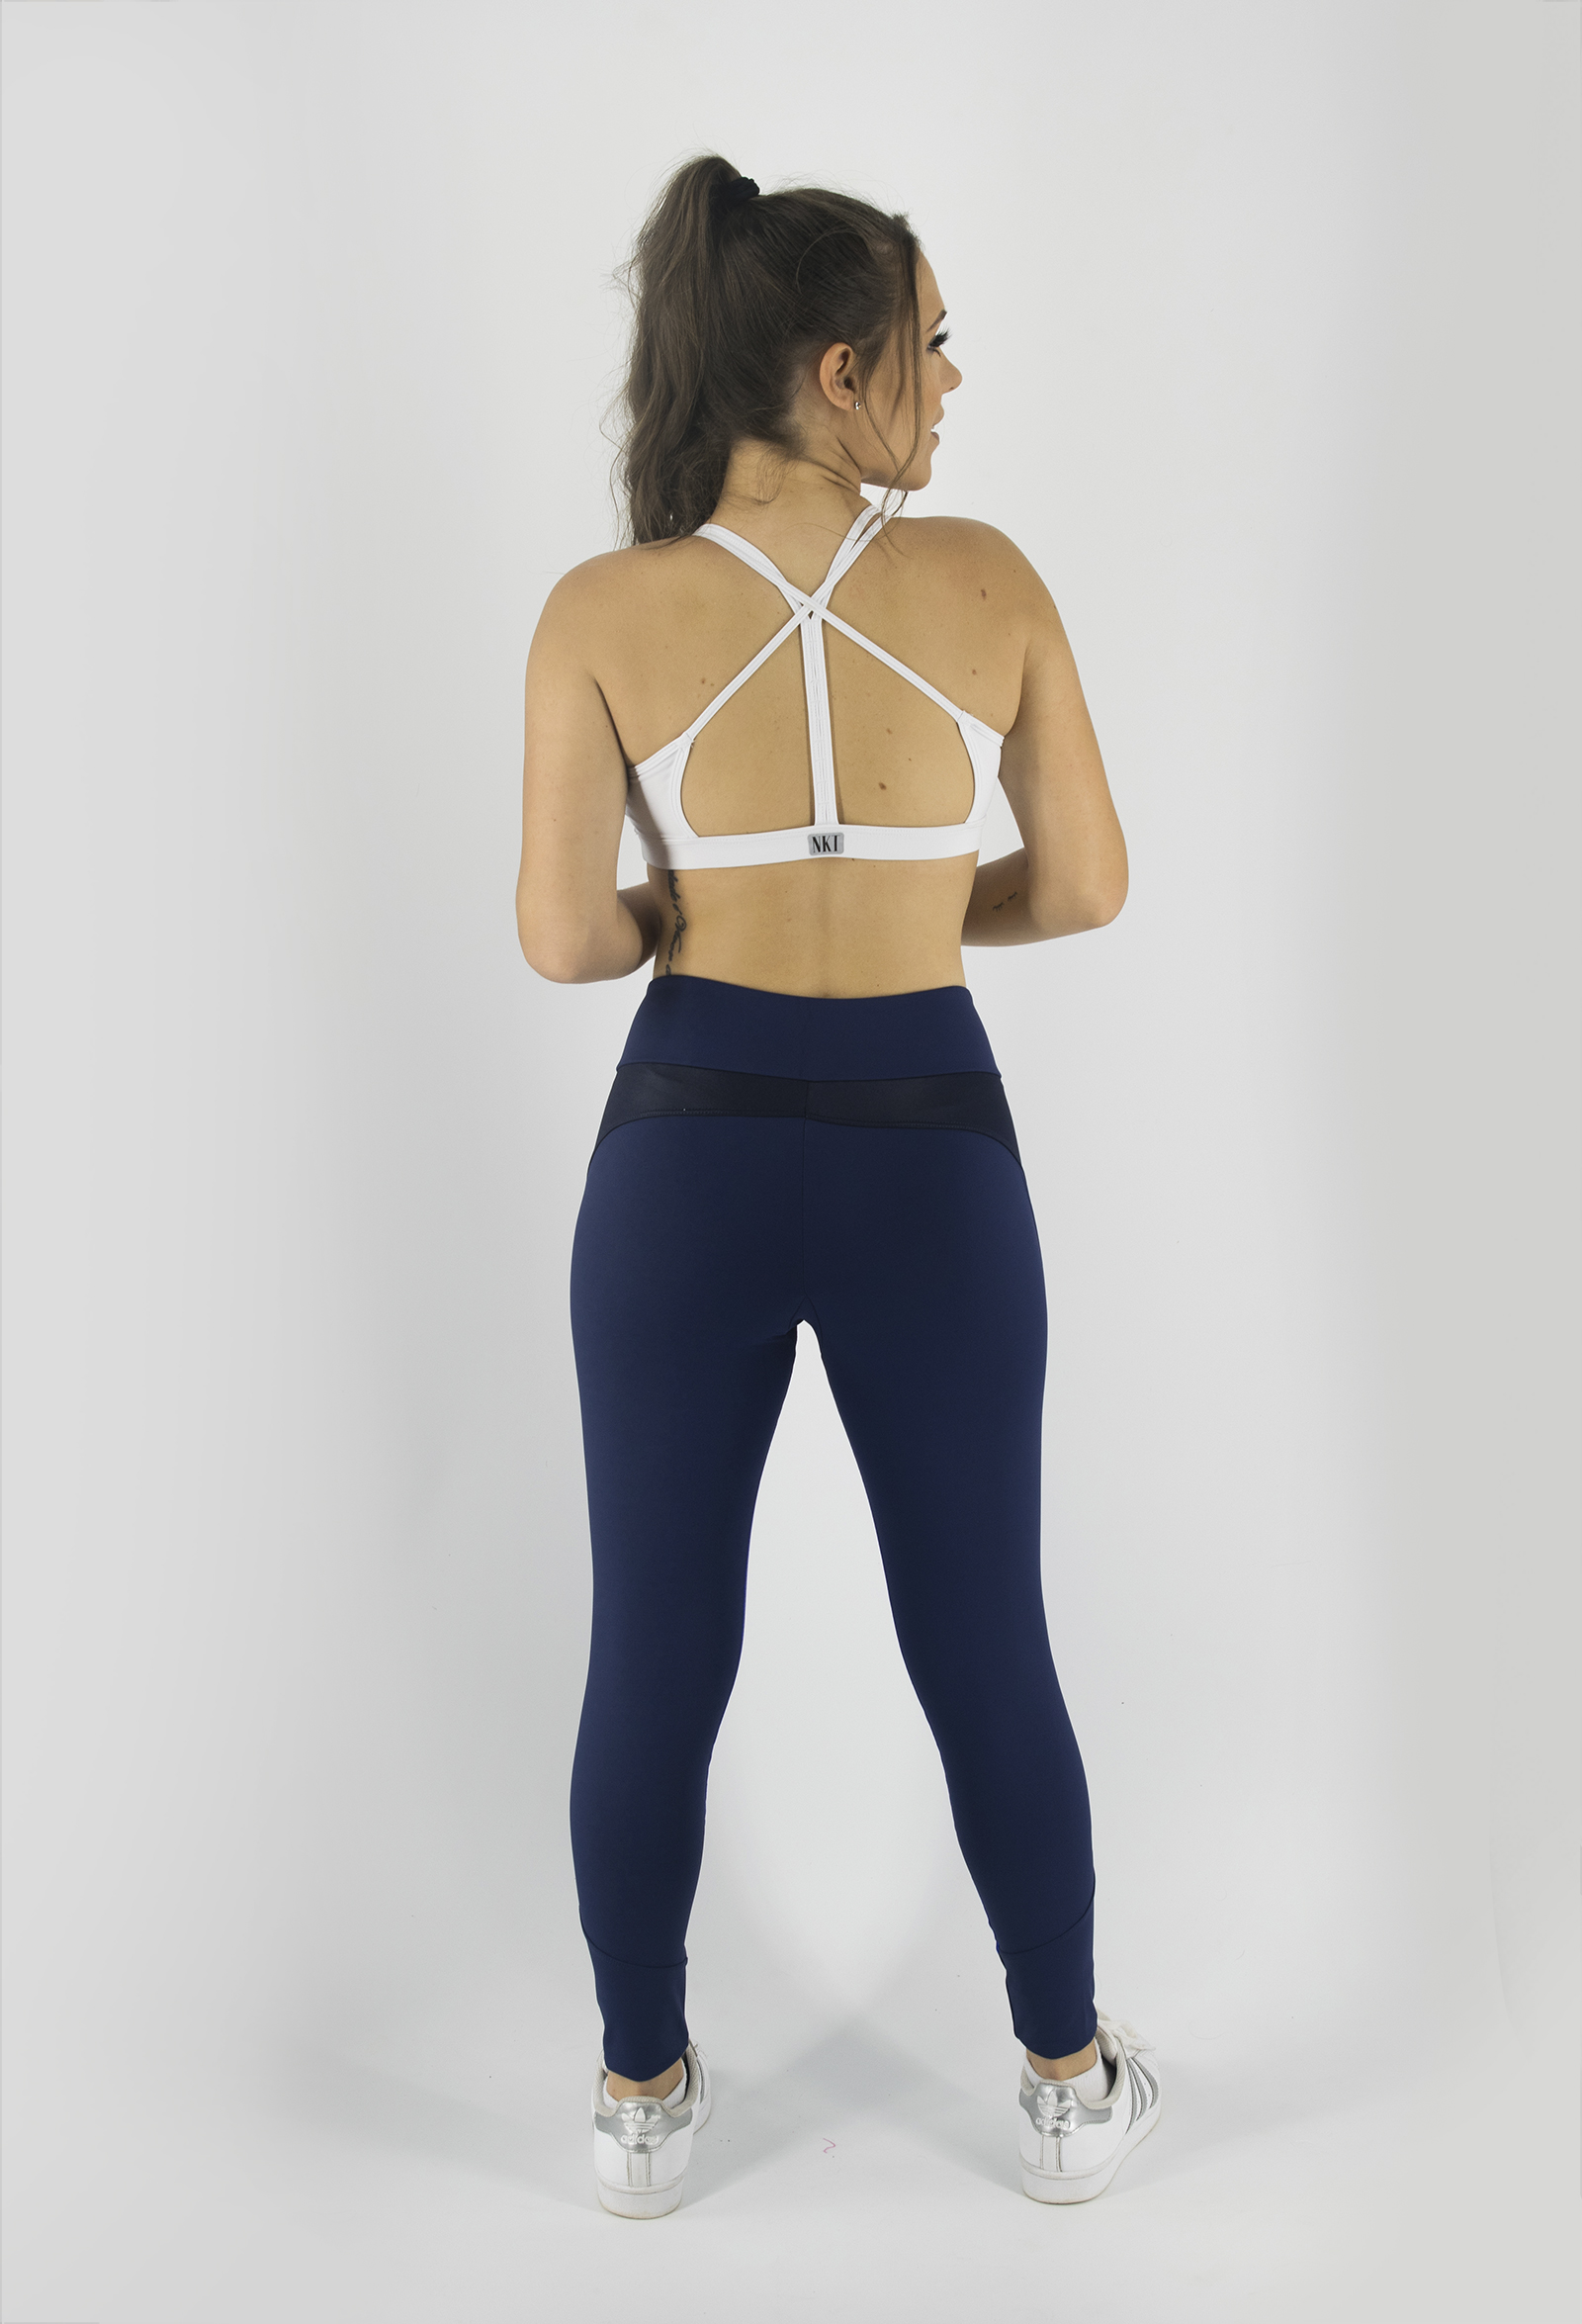 Legging All Bic, Coleção Just For You - NKT Fitwear Moda Fitness